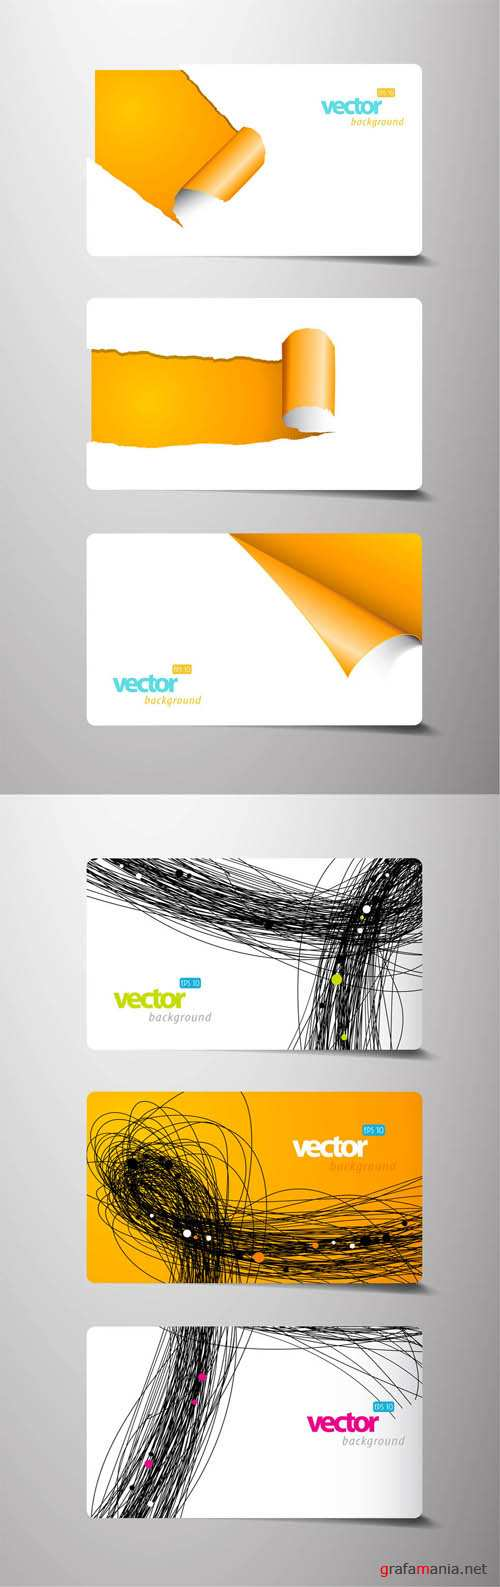 Vector Elements Creative Cards #4 EPS